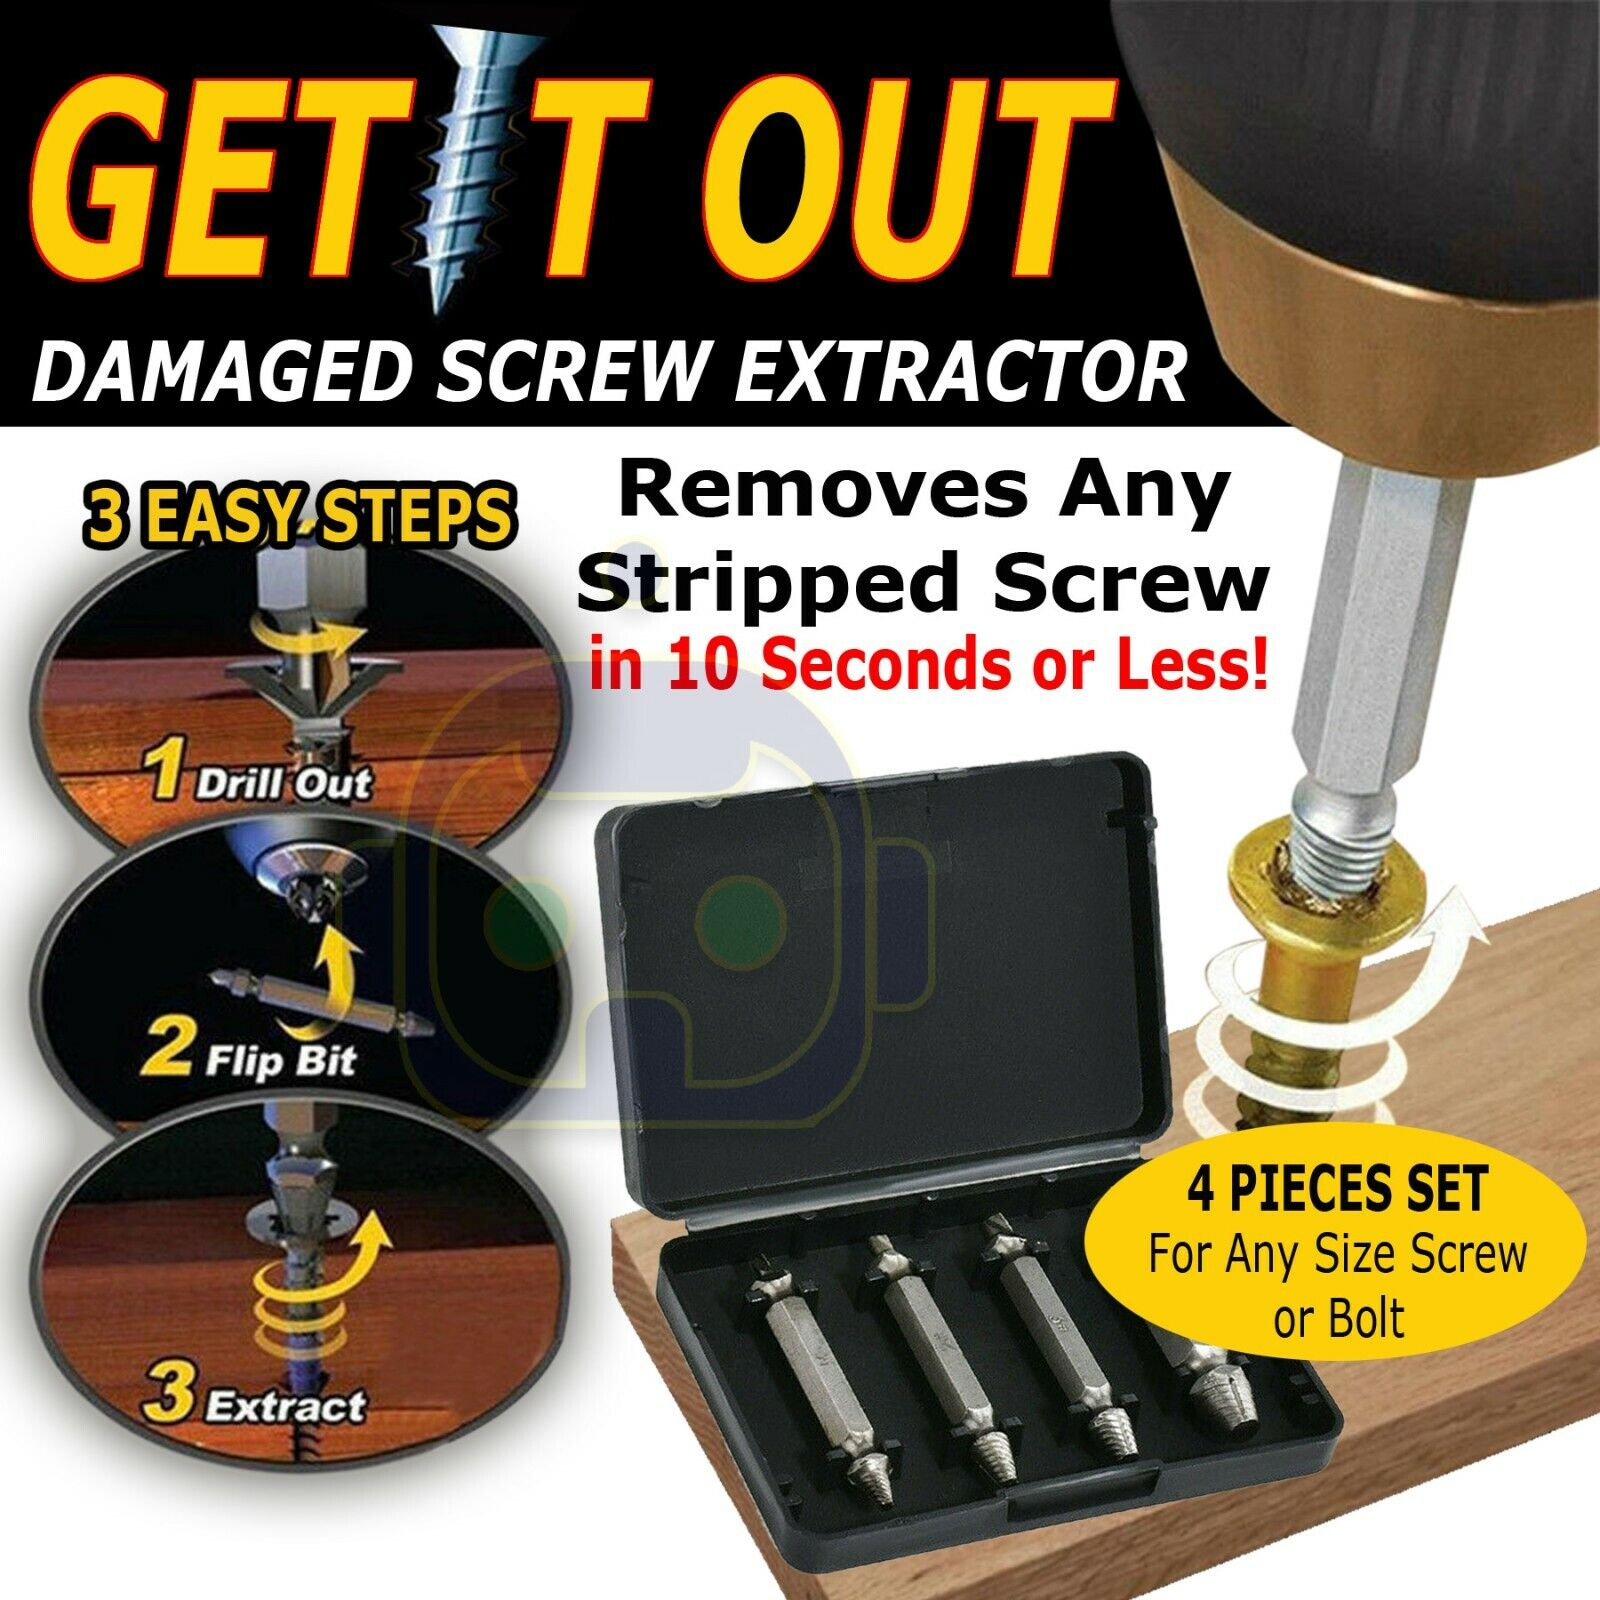 Damaged Screw Extractor Get It Out Drill Bits 4 PCS Tool Set Broken Bolt Remover